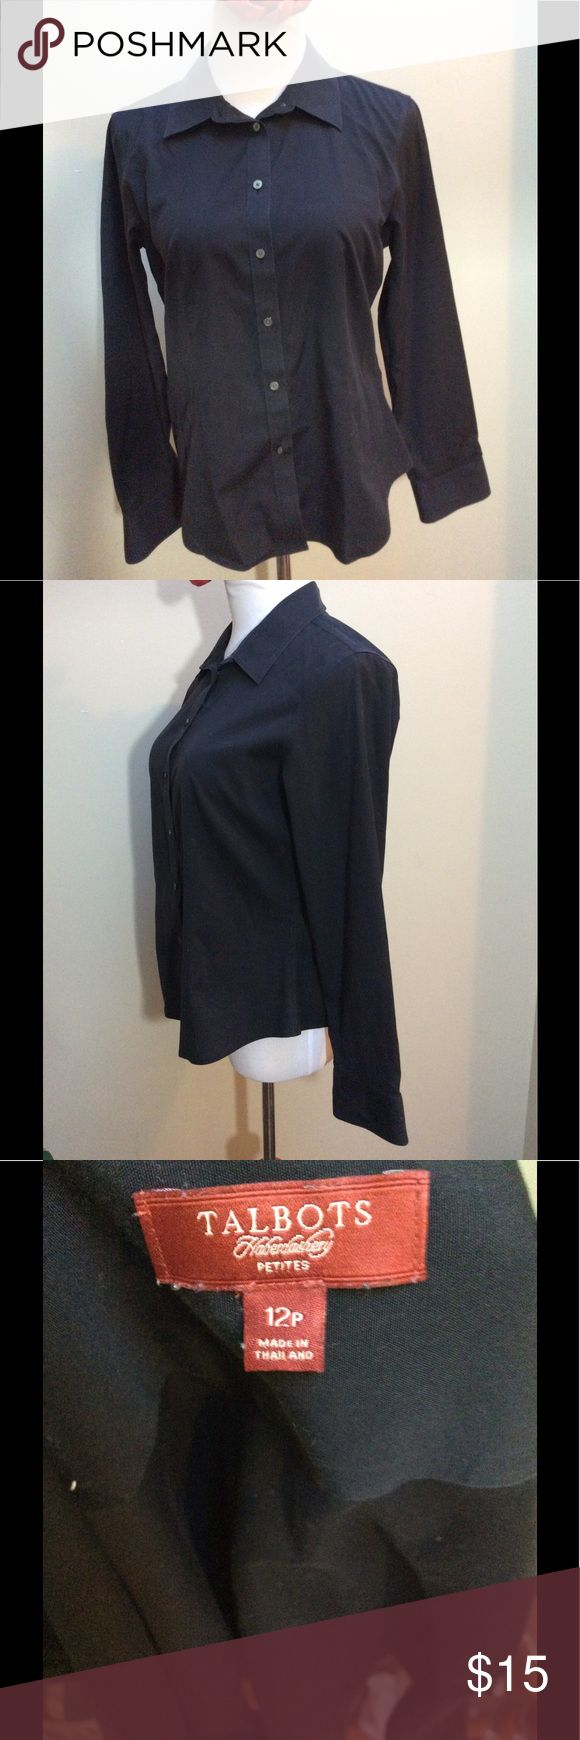 Talbots Haberdashery Button Black Shirt Petite 12P Make these yours!  	•	Classic Black Wrinkle Resistant Talbot Haberdashery Button Down Long Sleeve Shirt - Cotton Blend